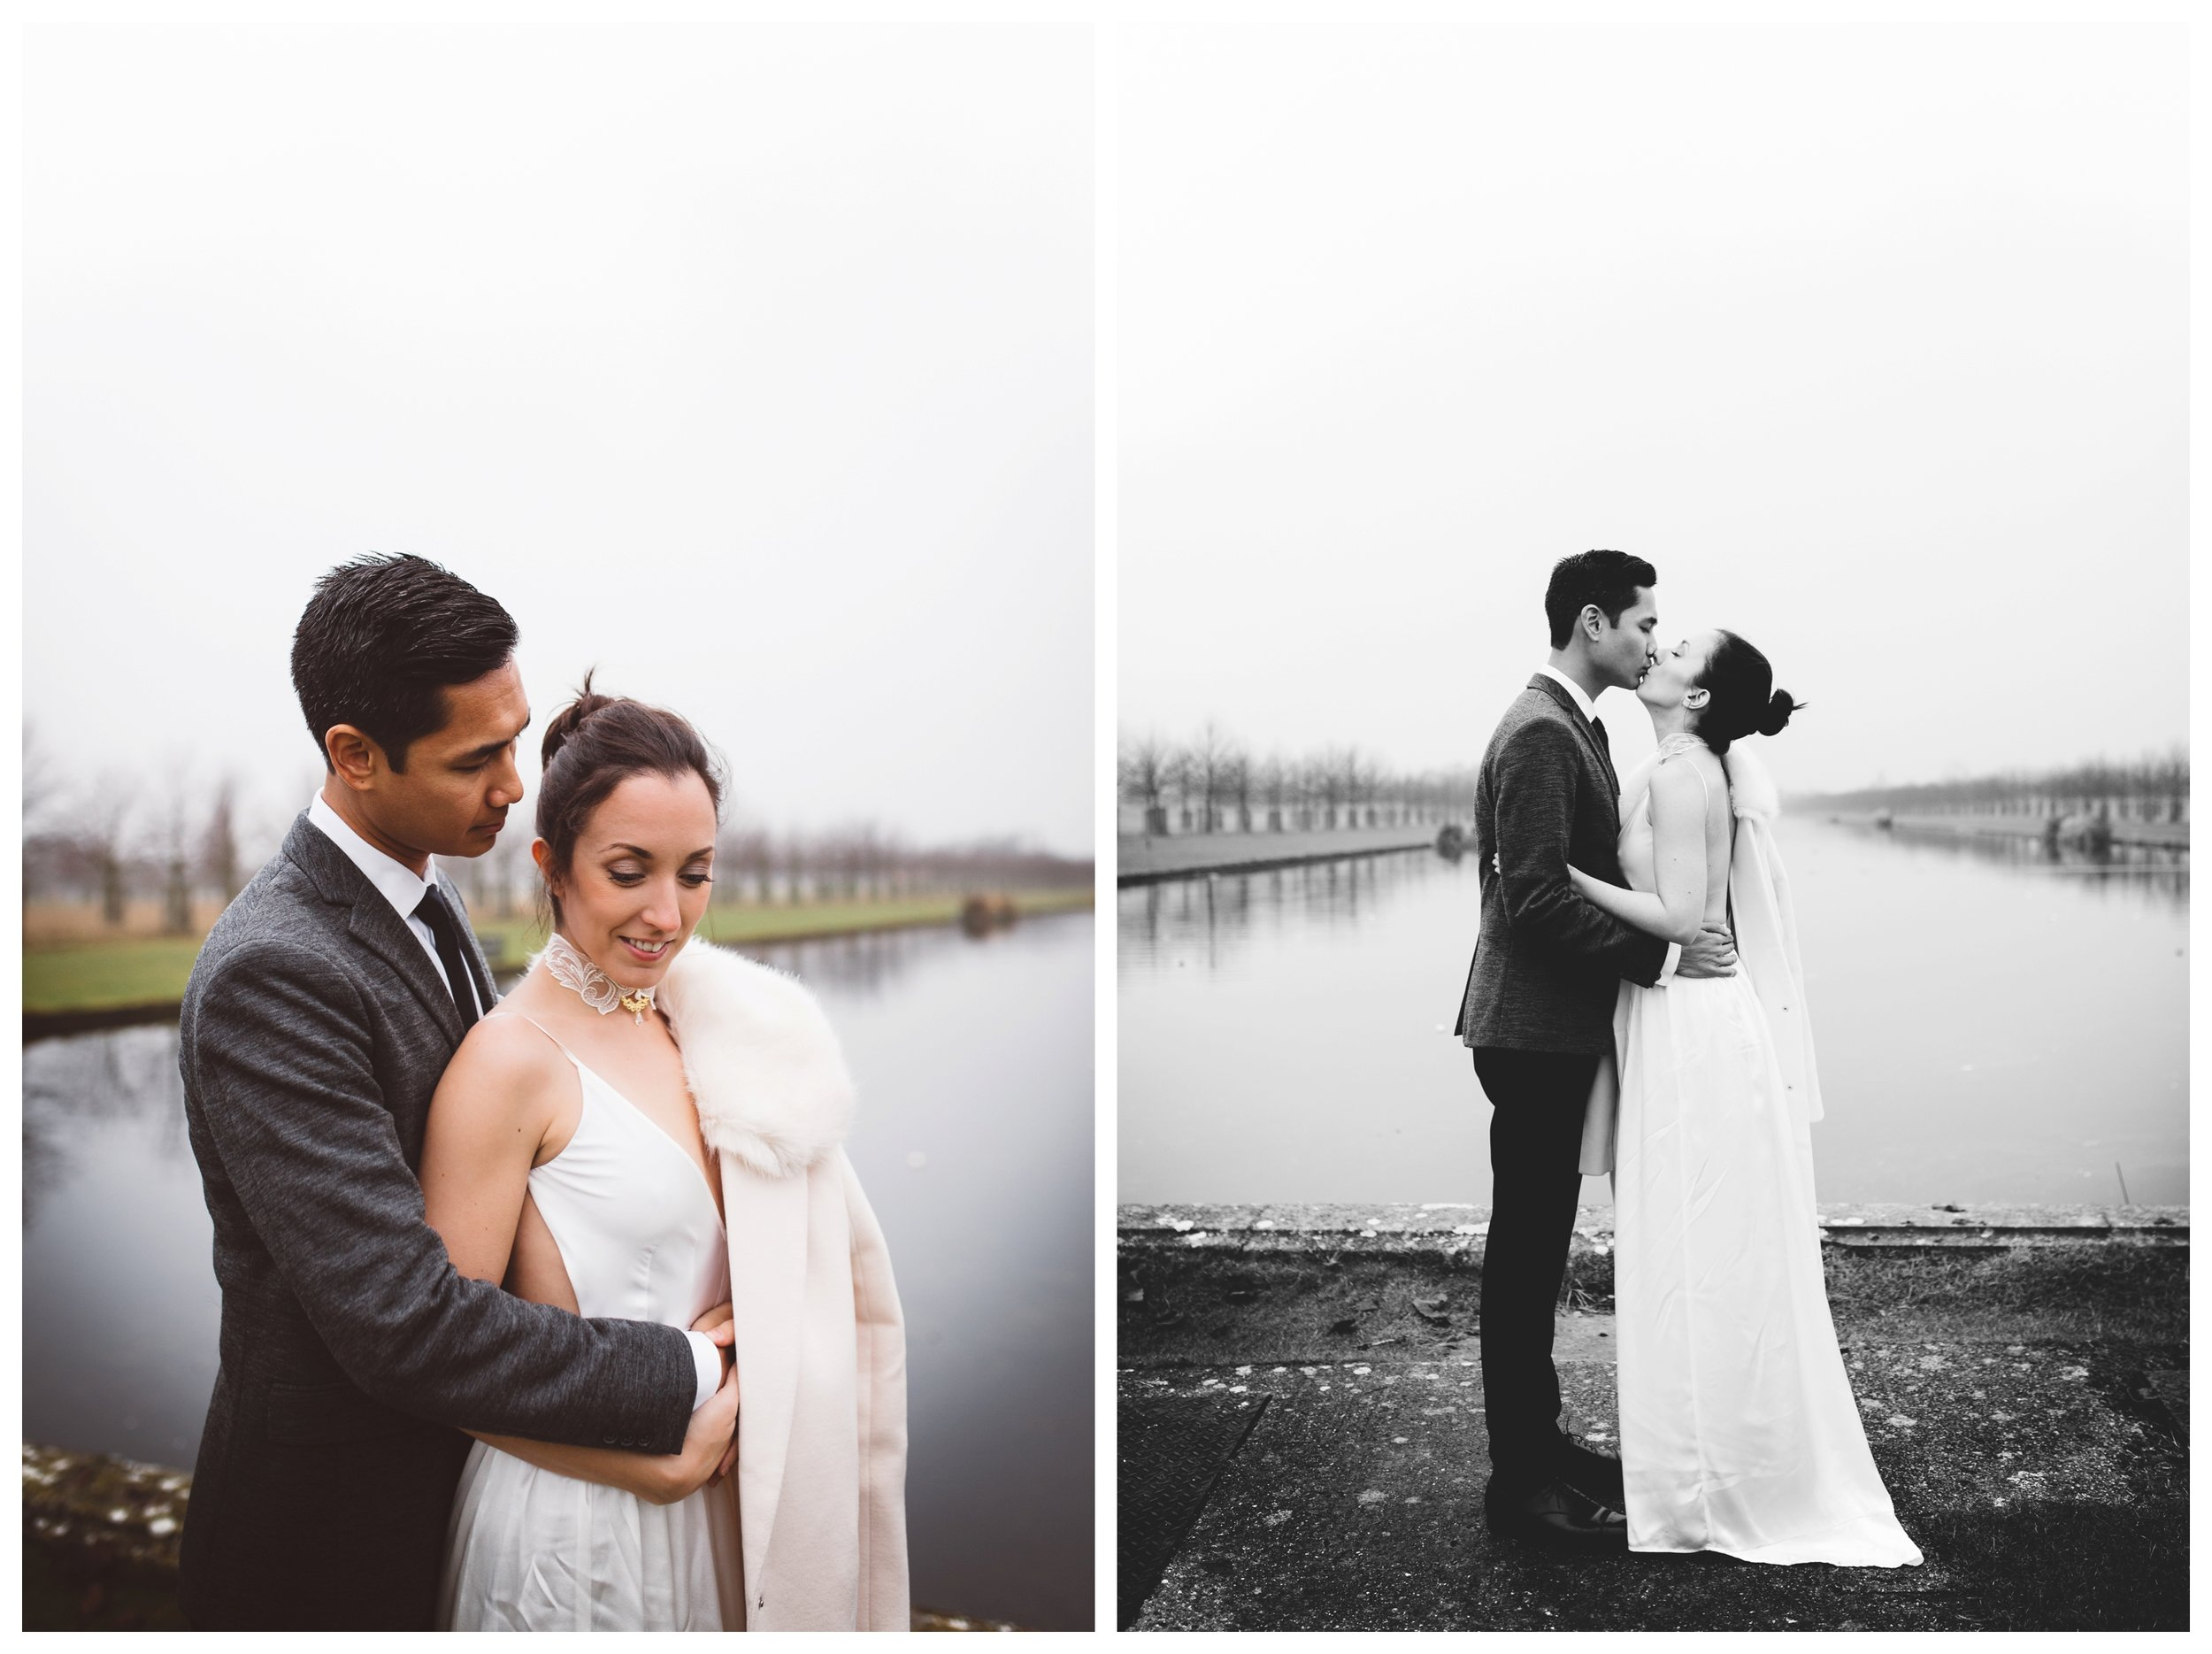 Wedding Photographer Woking Guildford_Copyright Susie Fisher Photography